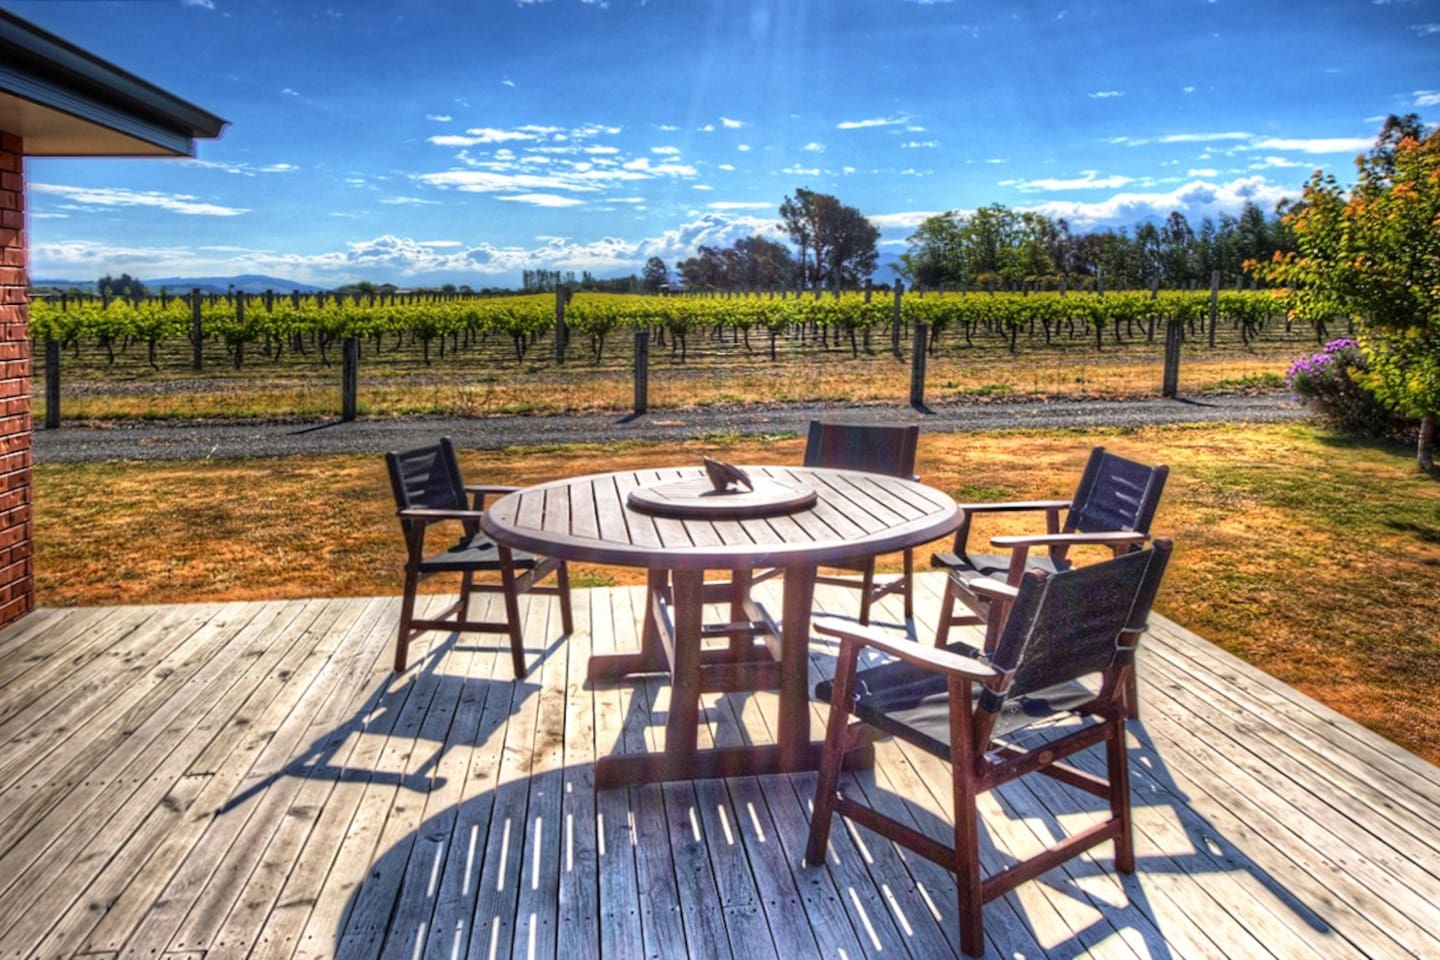 Sit on the deck with a wine and some food in the Marlborough sun.